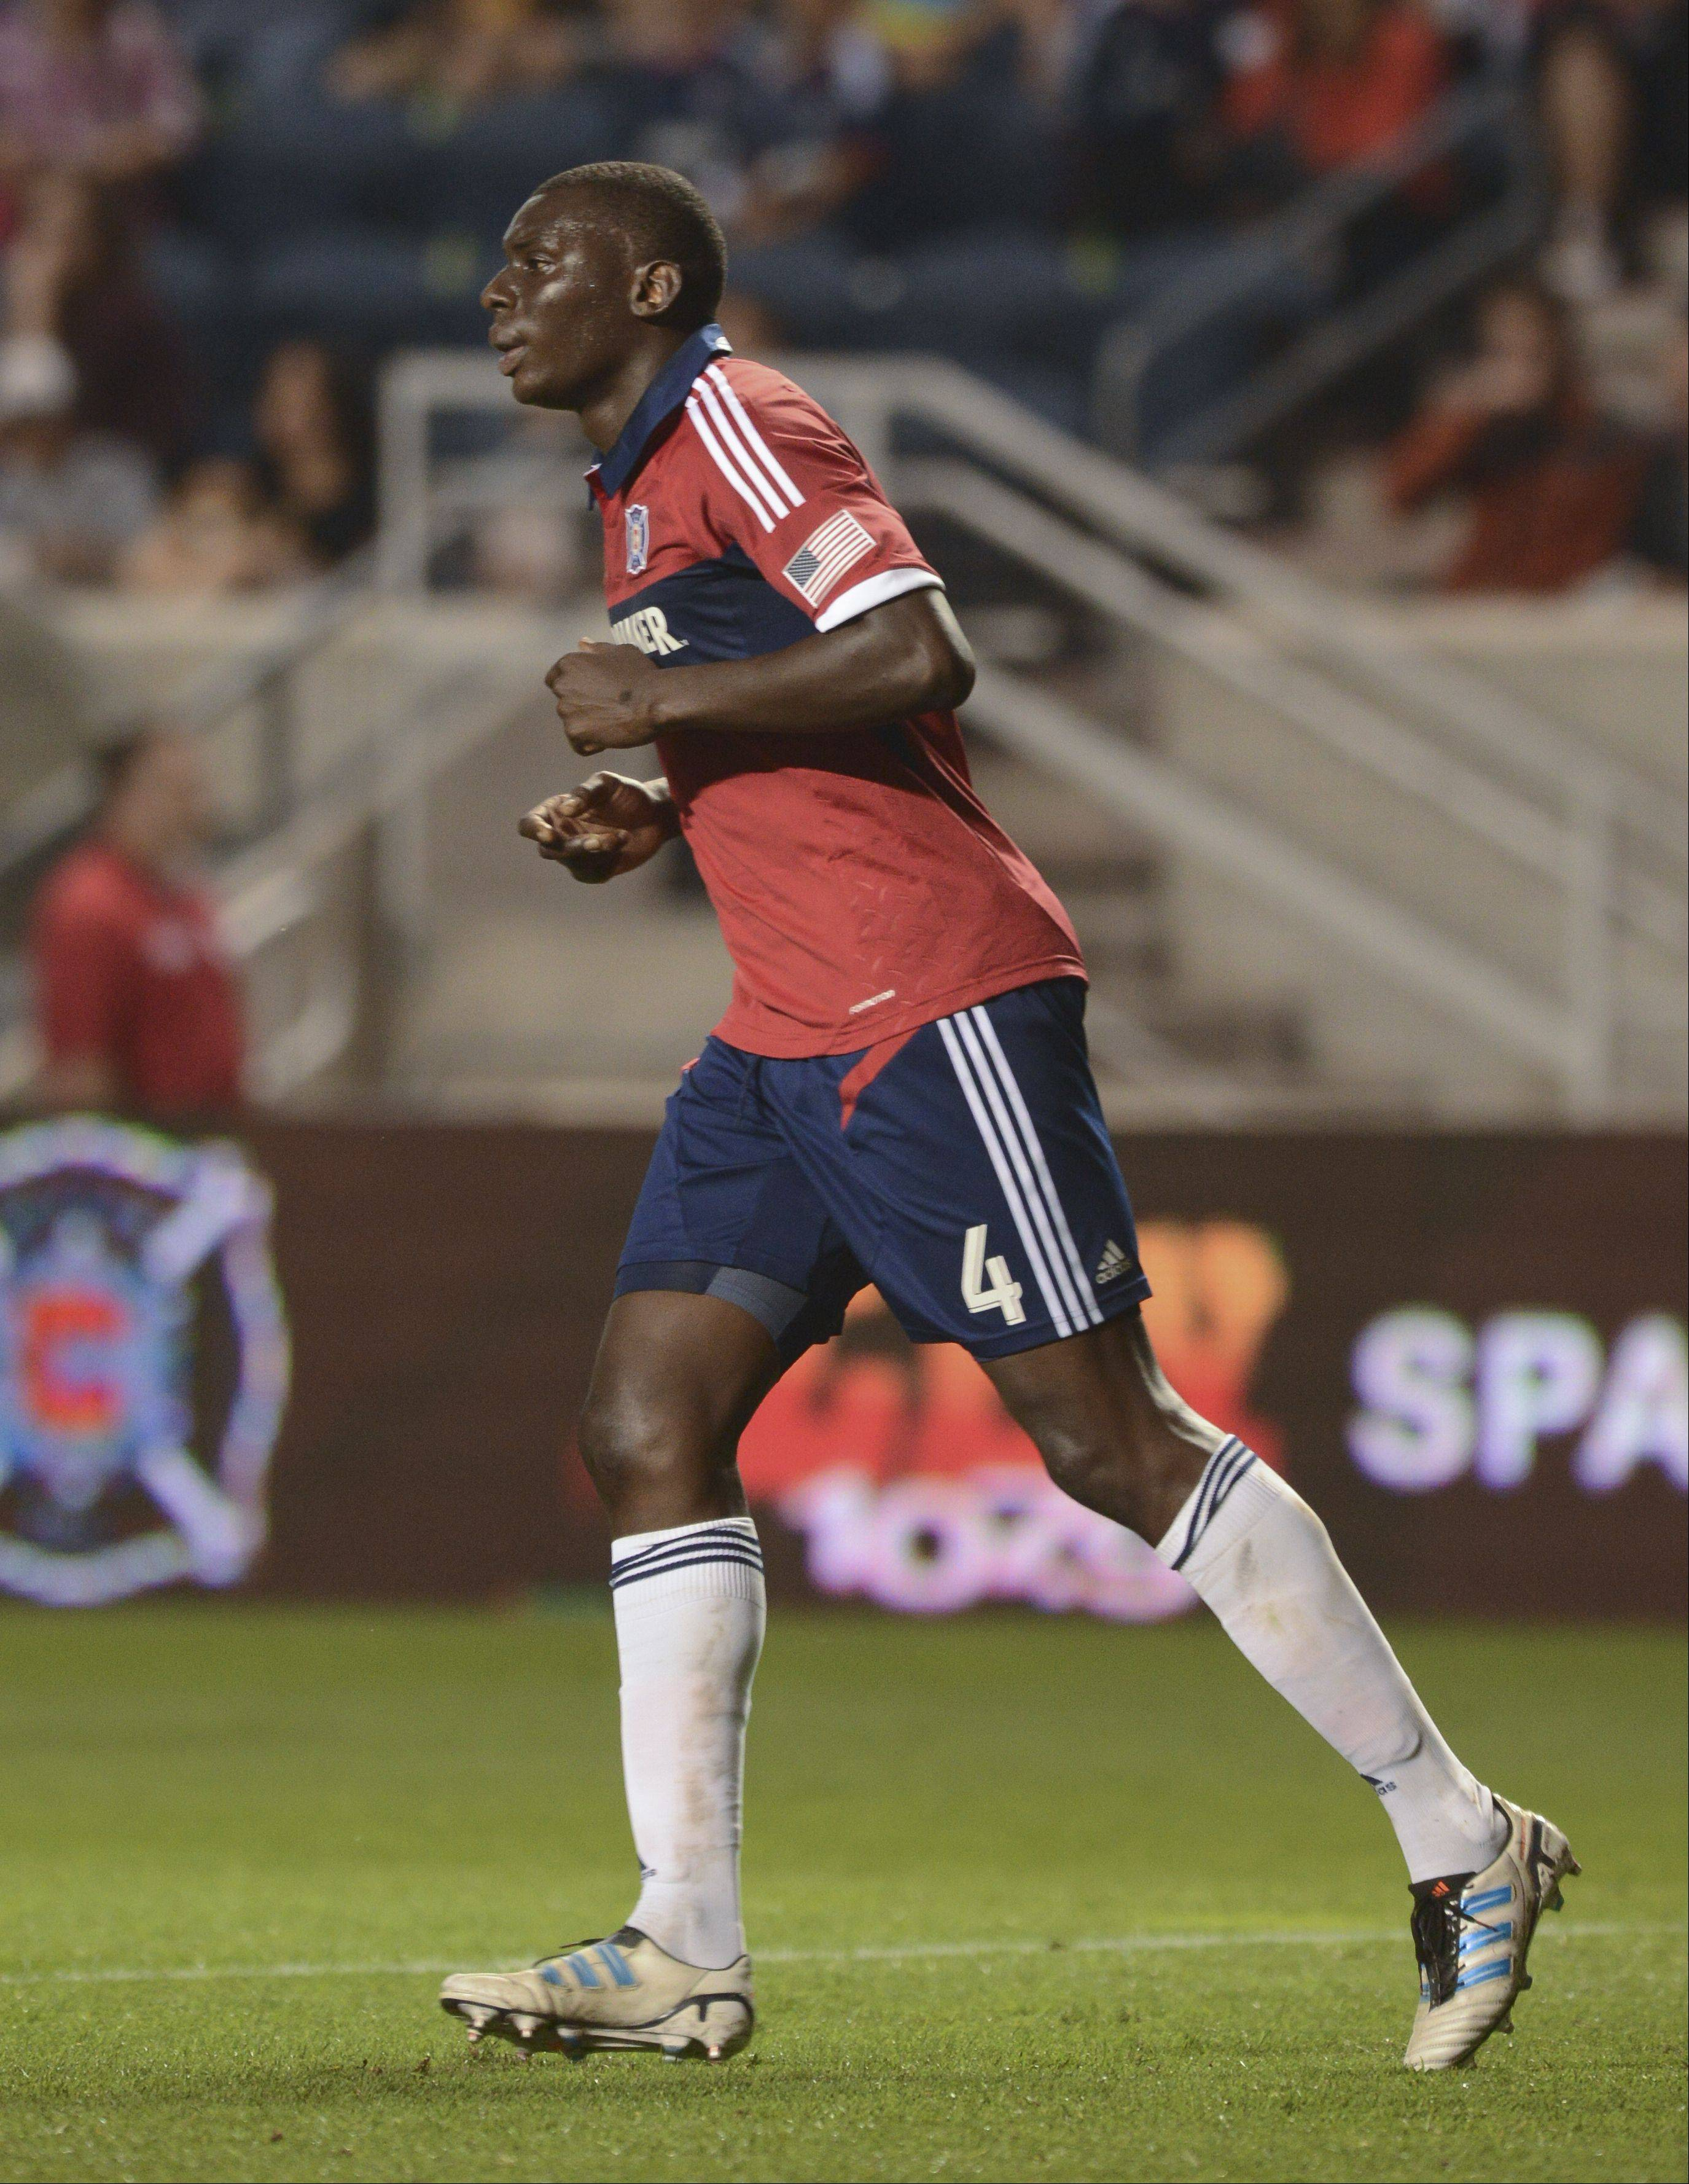 Bakary Soumare can help the Chicago Fire clinch a playoff berth this weekend � if some other games also fall into place.